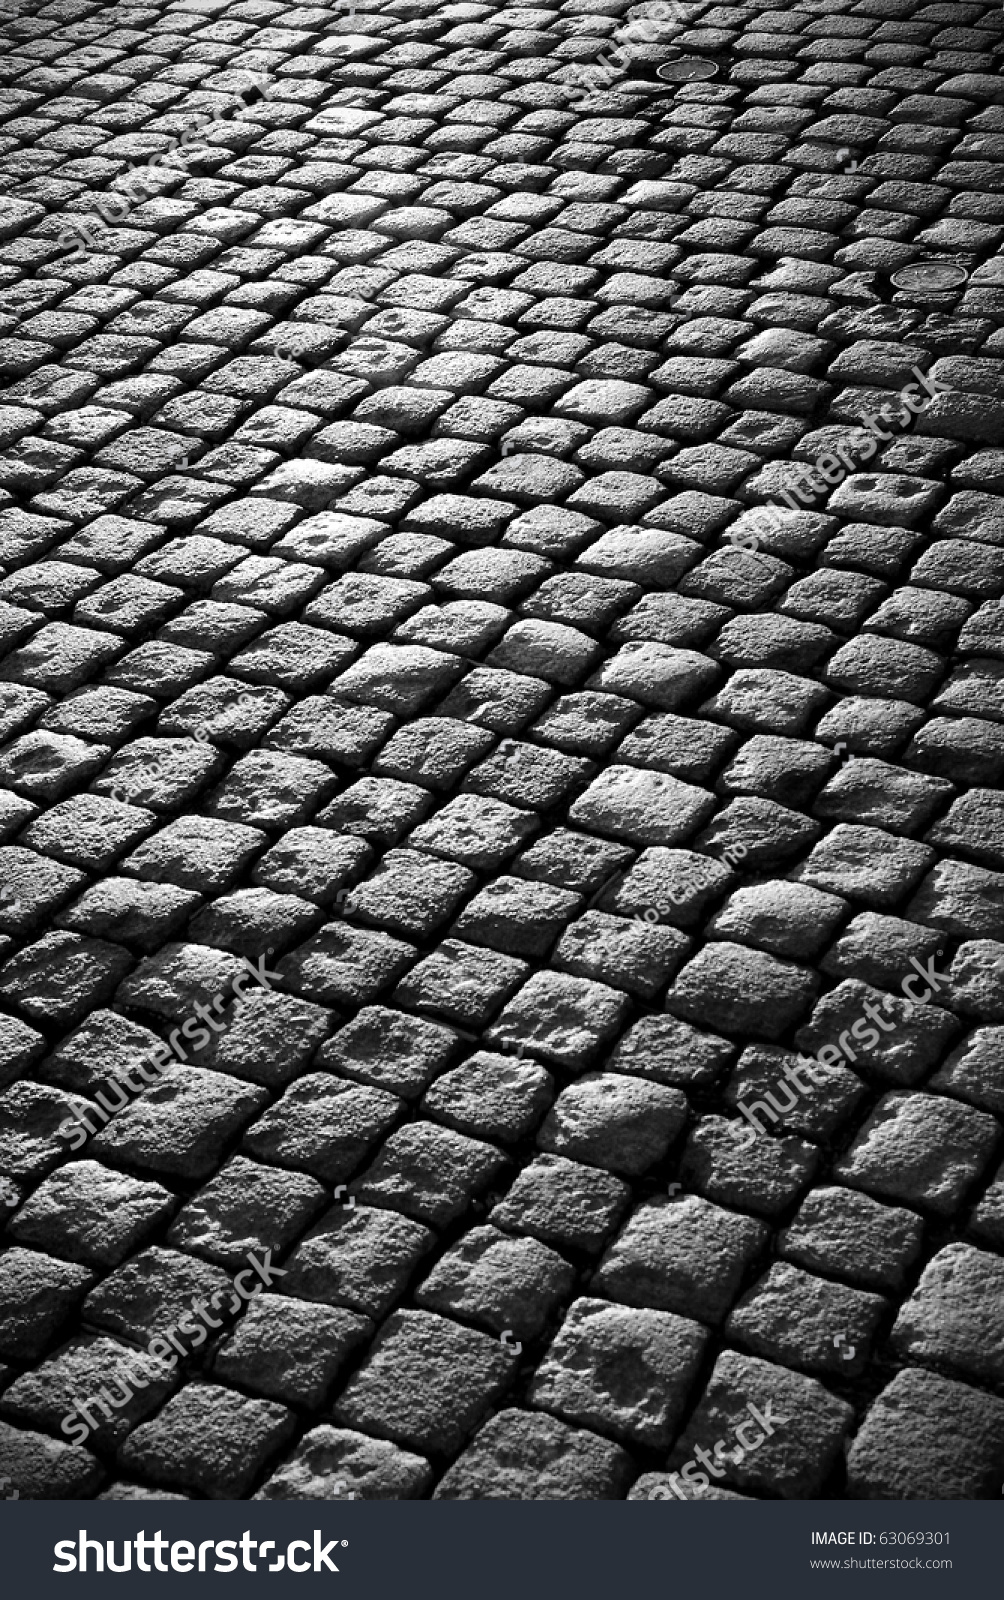 Old Cobblestone Road Background Imag...